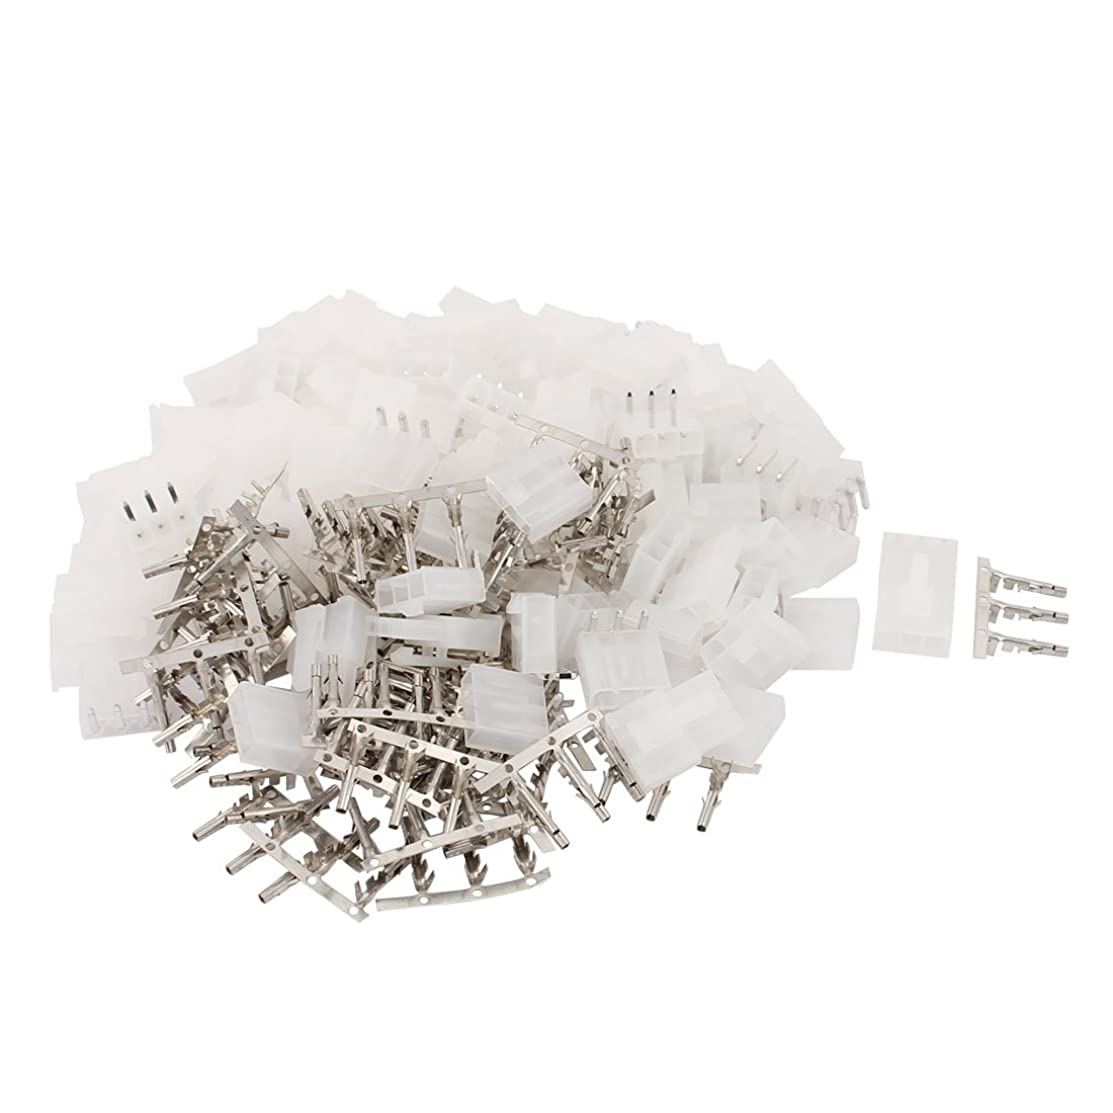 Aexit 50 Sets Stereo System Components Single Row Male Shell 5557 4.2mm Pitch 3P Header Bent Wireless Audio Receivers & Adapters Connector White